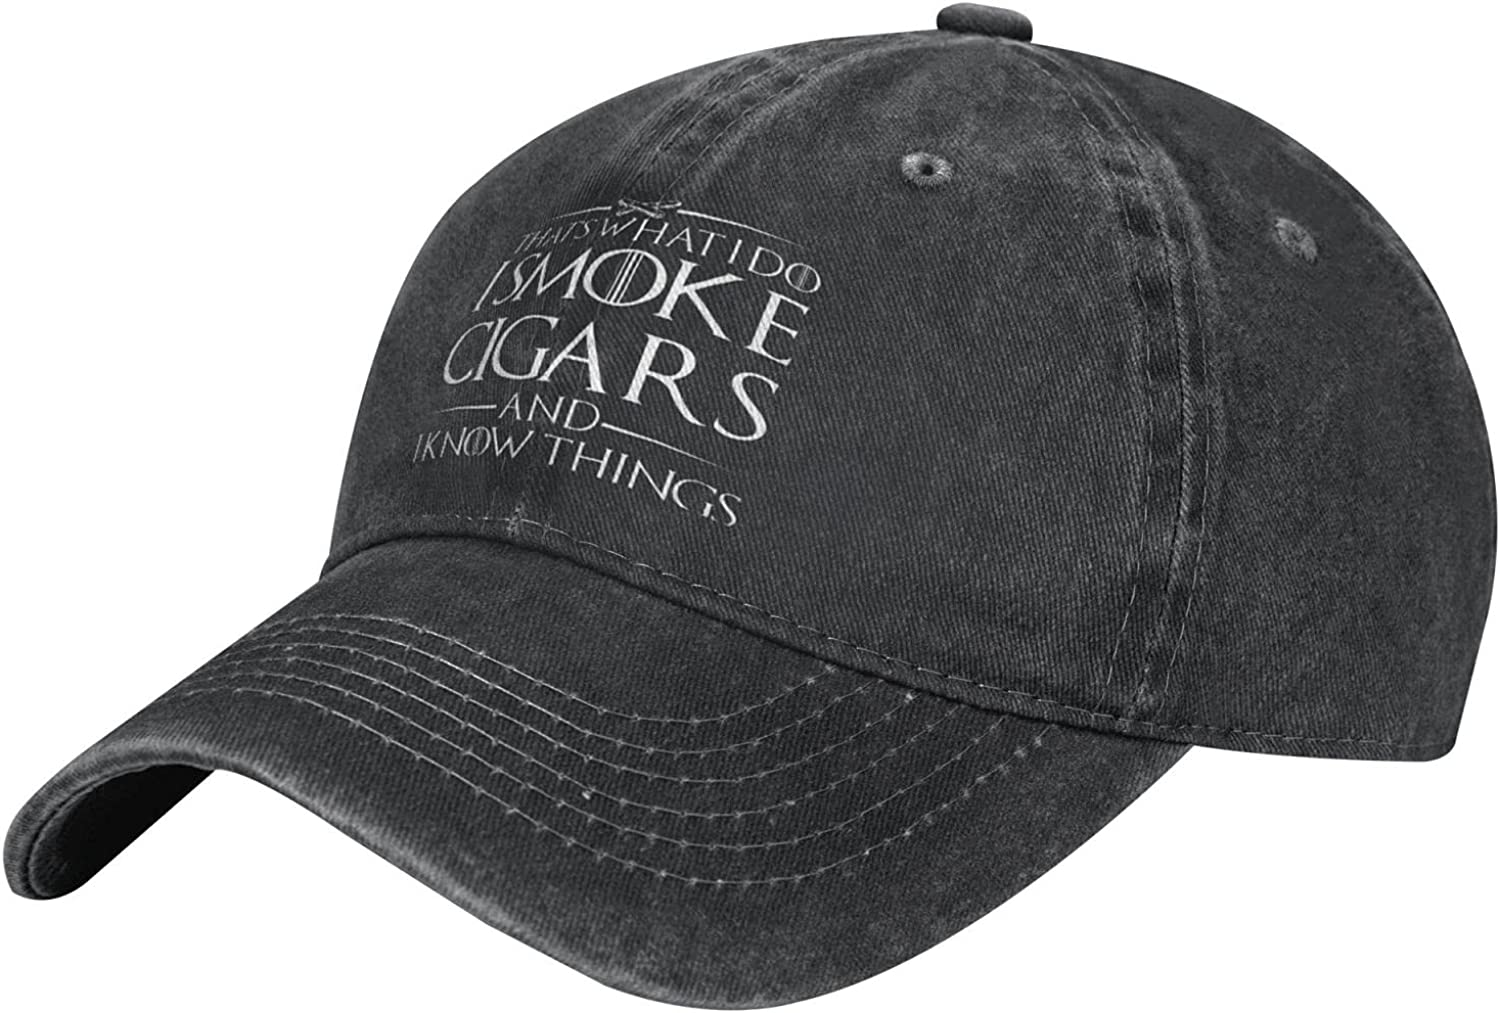 Hat'S What I Do I Smoke Cigars and I Know Things 1 Man's Women's Retro Washed Baseball Cap Cowboy Hat Black